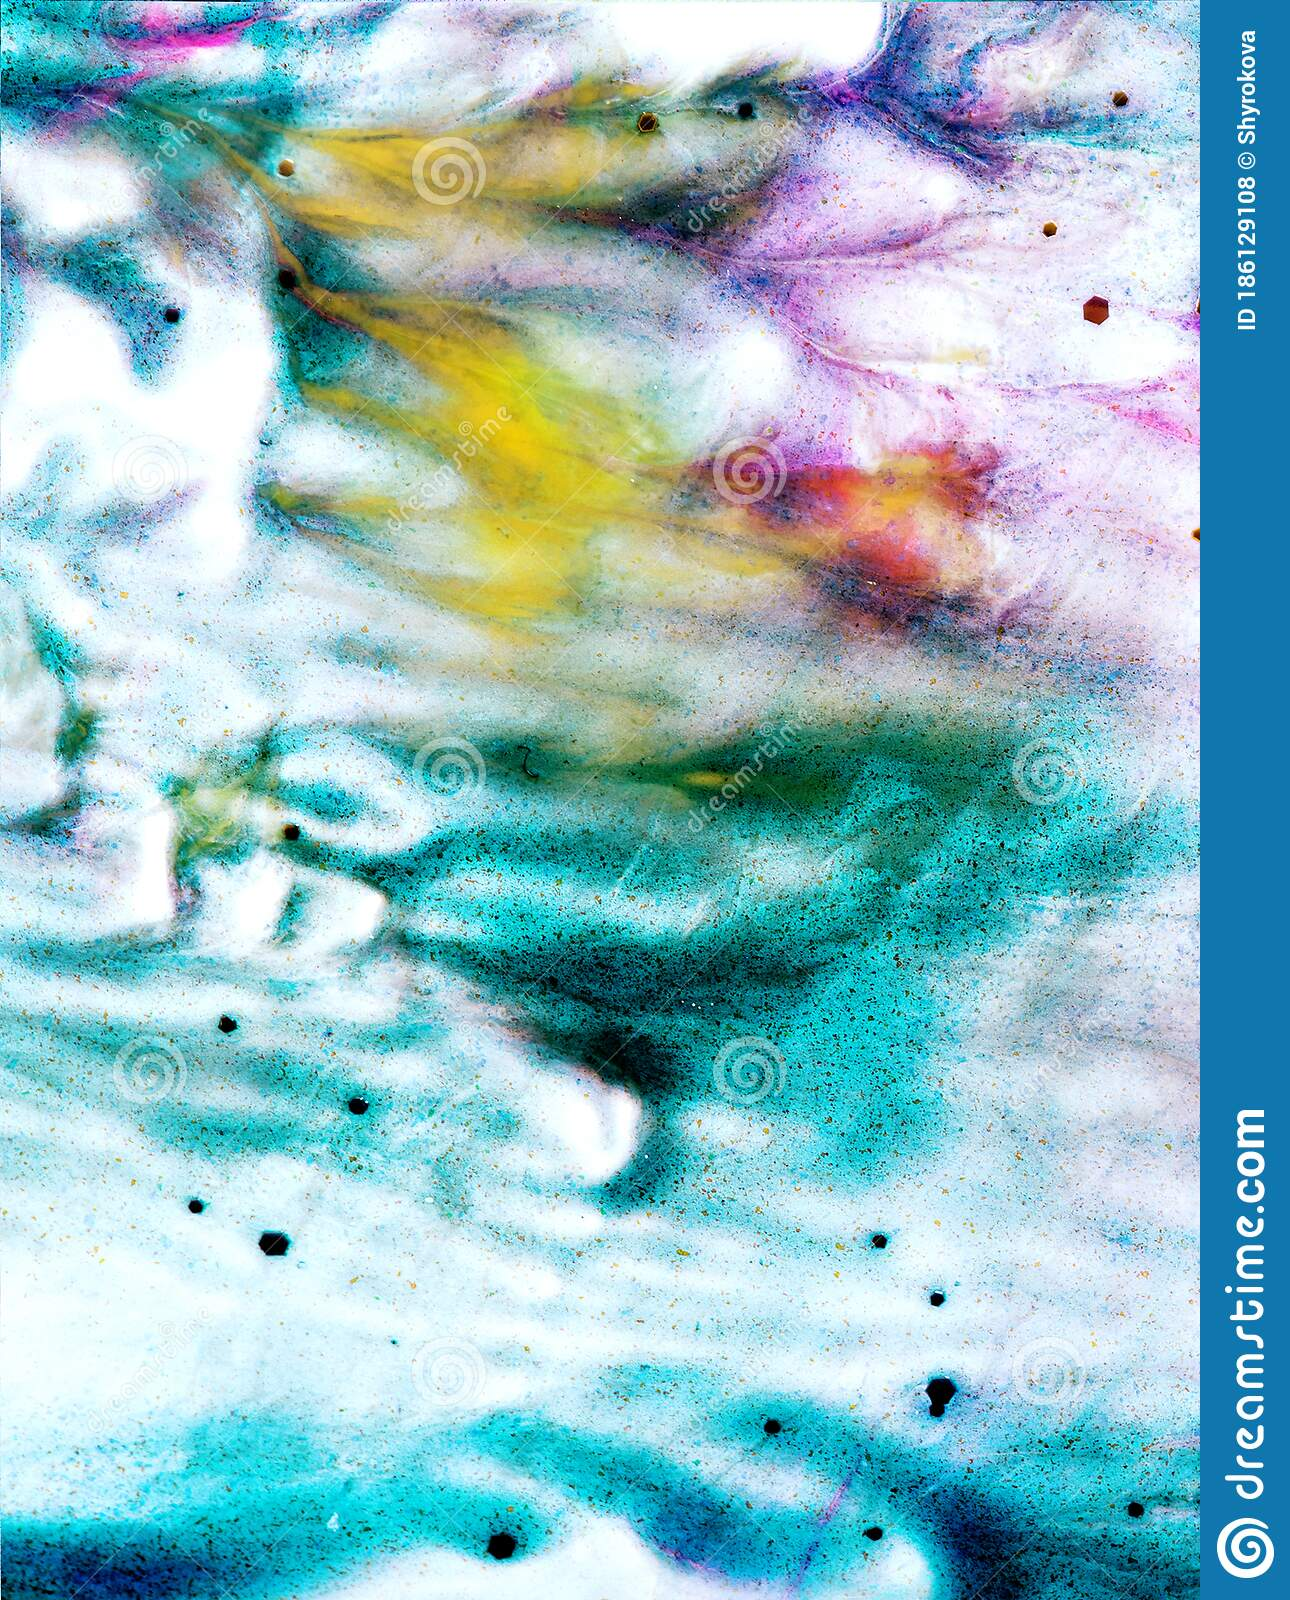 Abstract Acrylic Background In Blue Yellow Colours Stock Photo Image Of Paint Particles 186129108